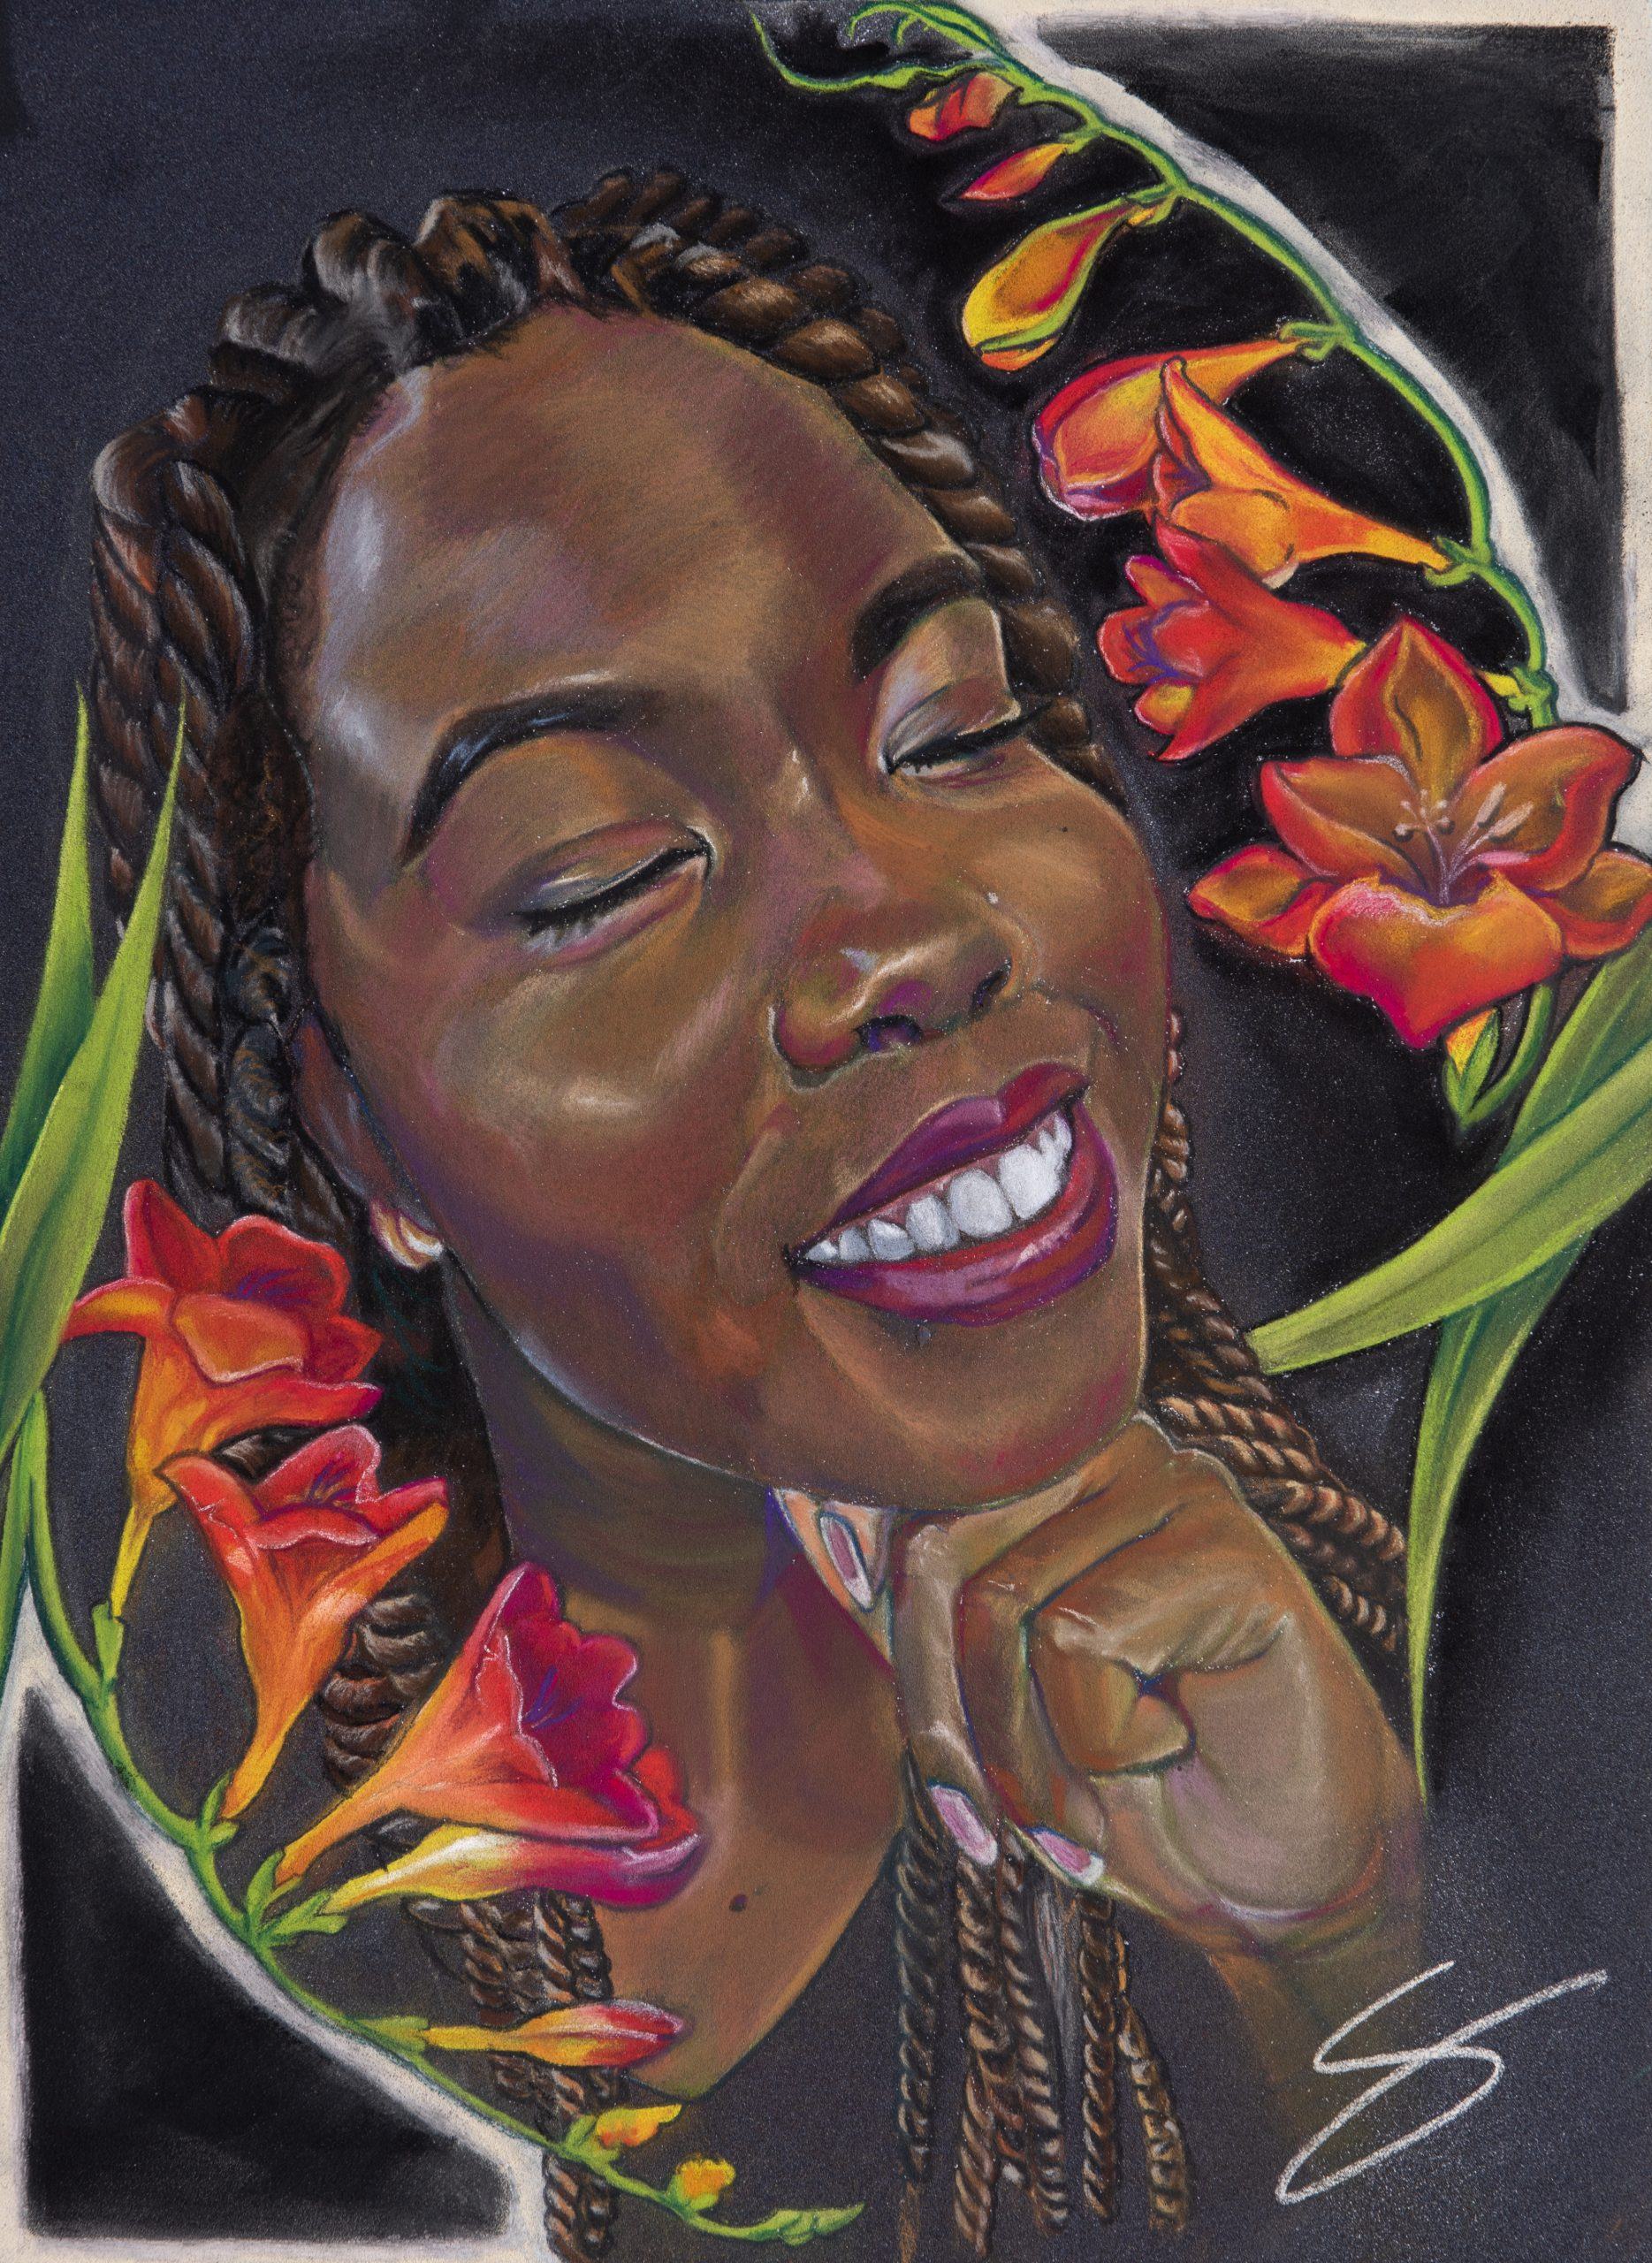 Black woman pastel portrait painting with red and yellow freesia flowers